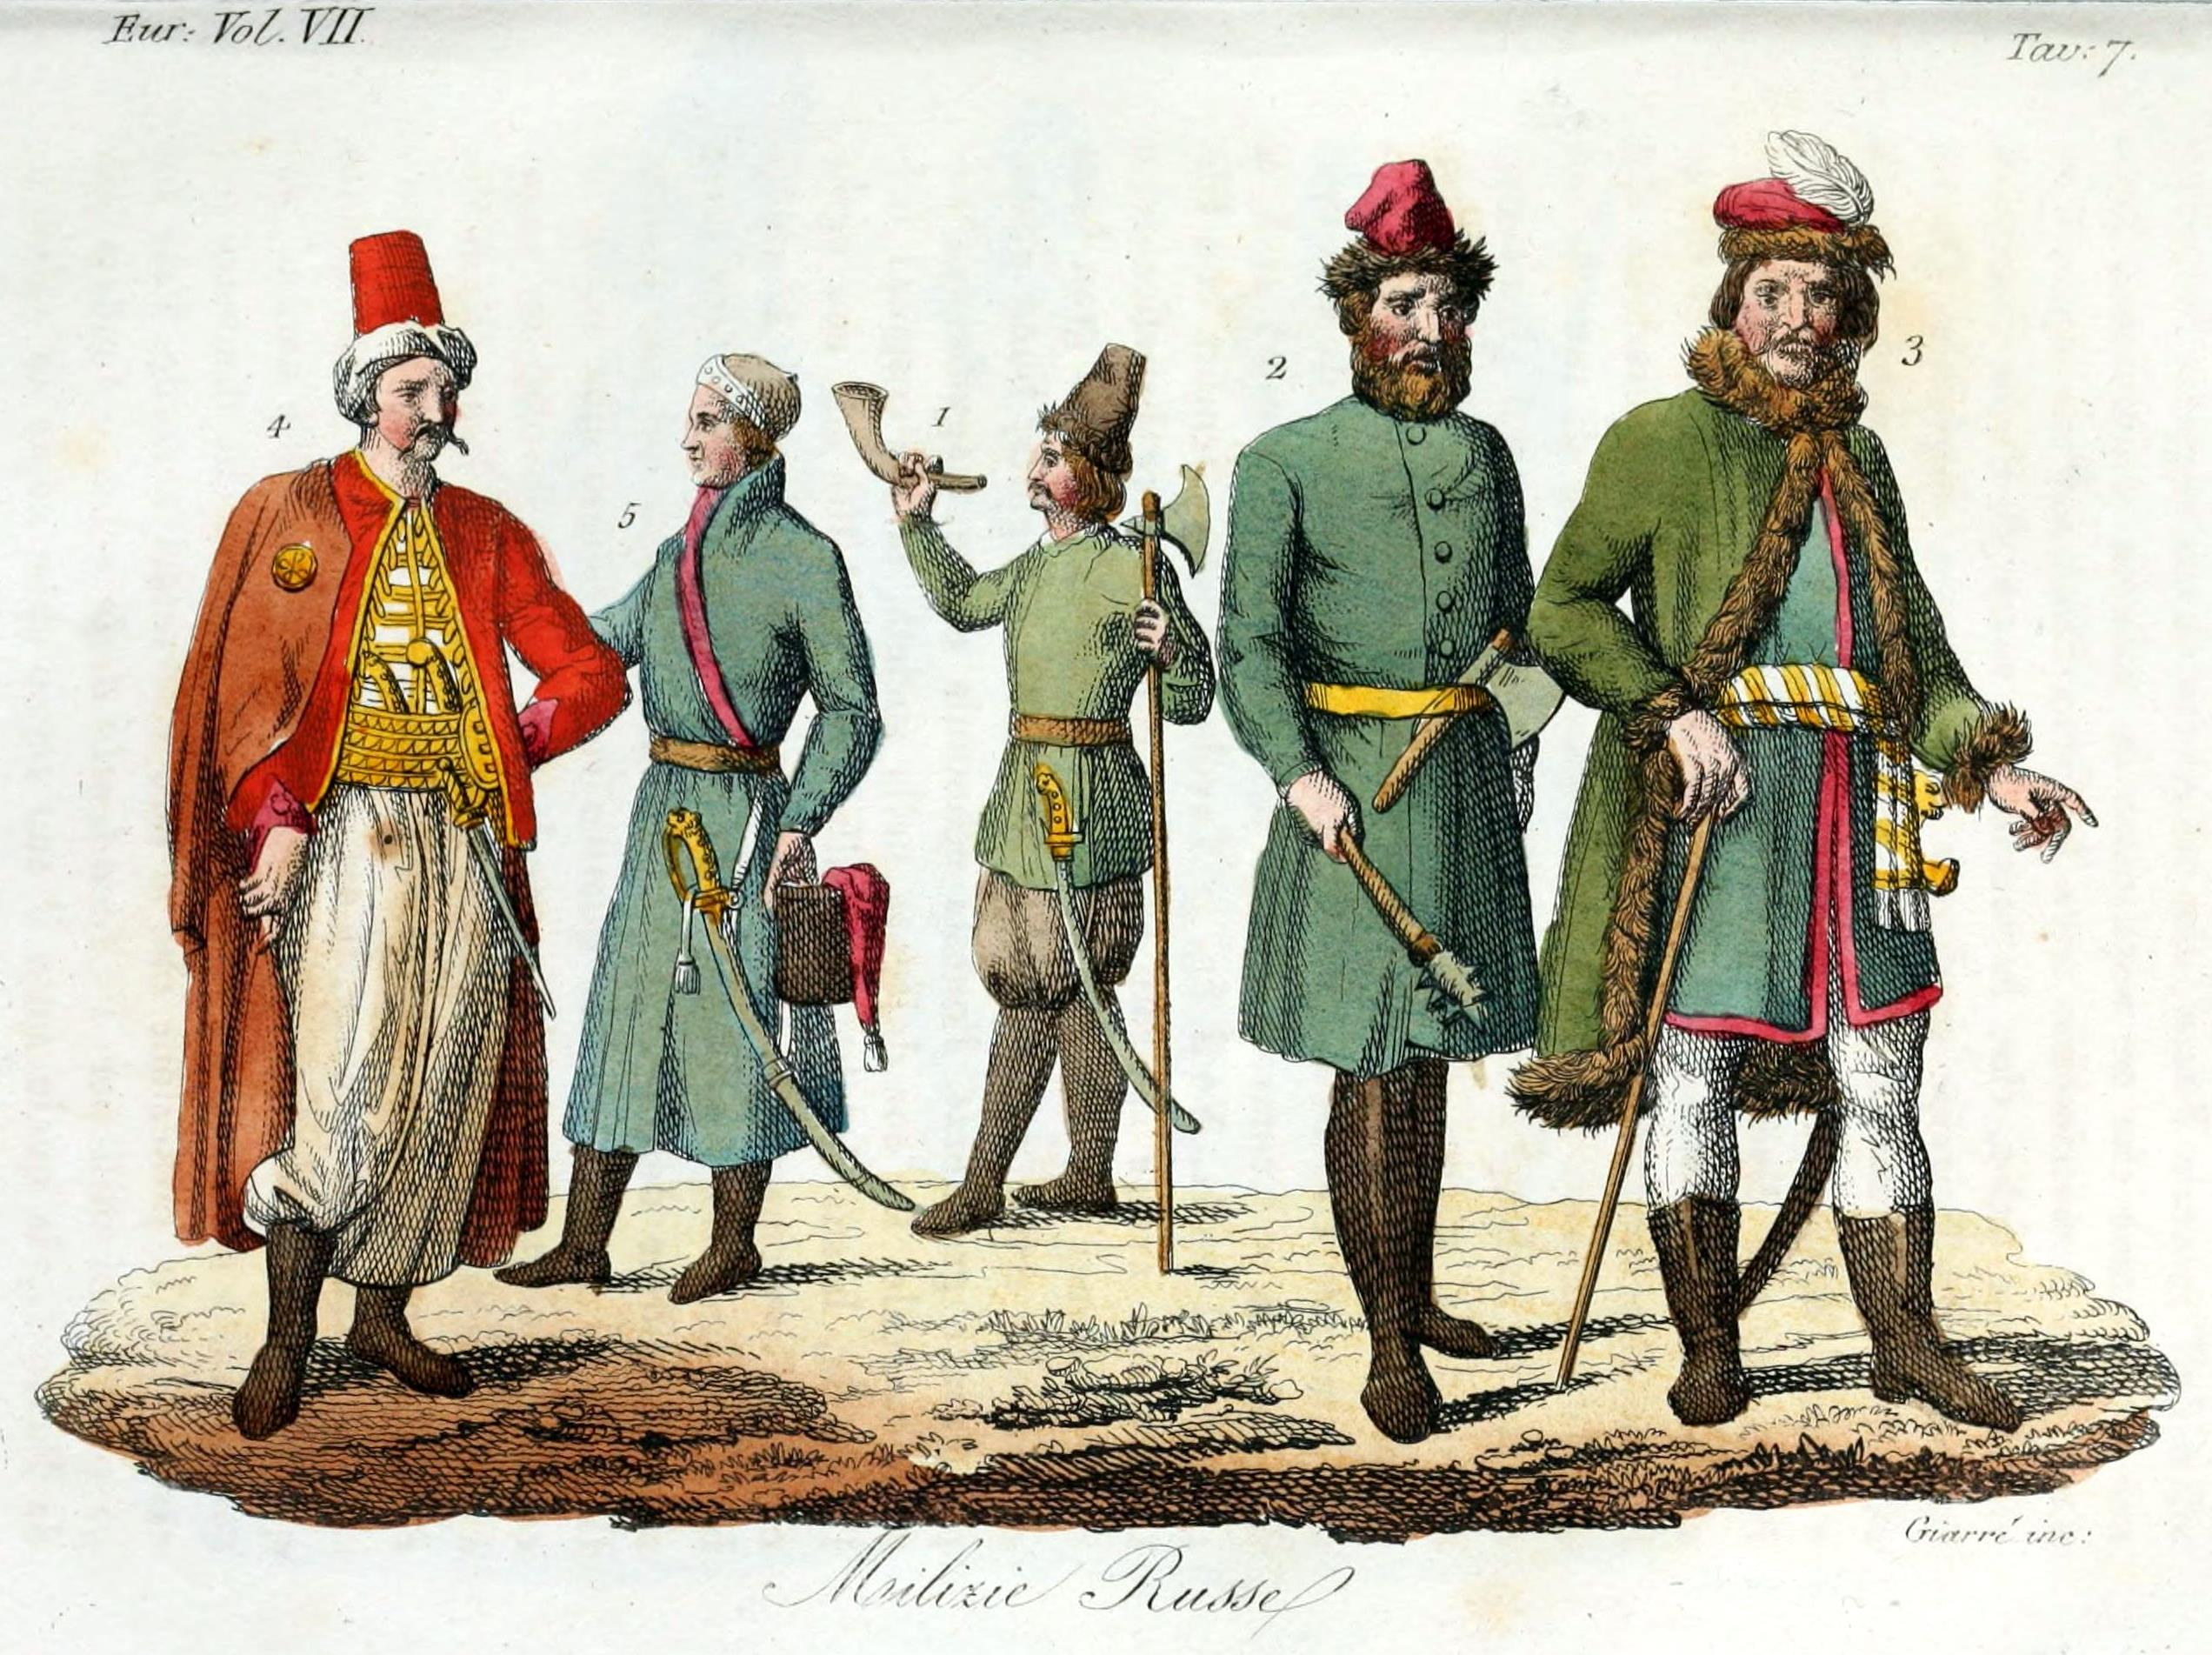 the janissaries of the ottoman turkish empire The janissaries were the elite warrior slaves of the ottoman empire oddly enough, many of the traditions and accoutrements we associate with them were inspired by food (of all things.